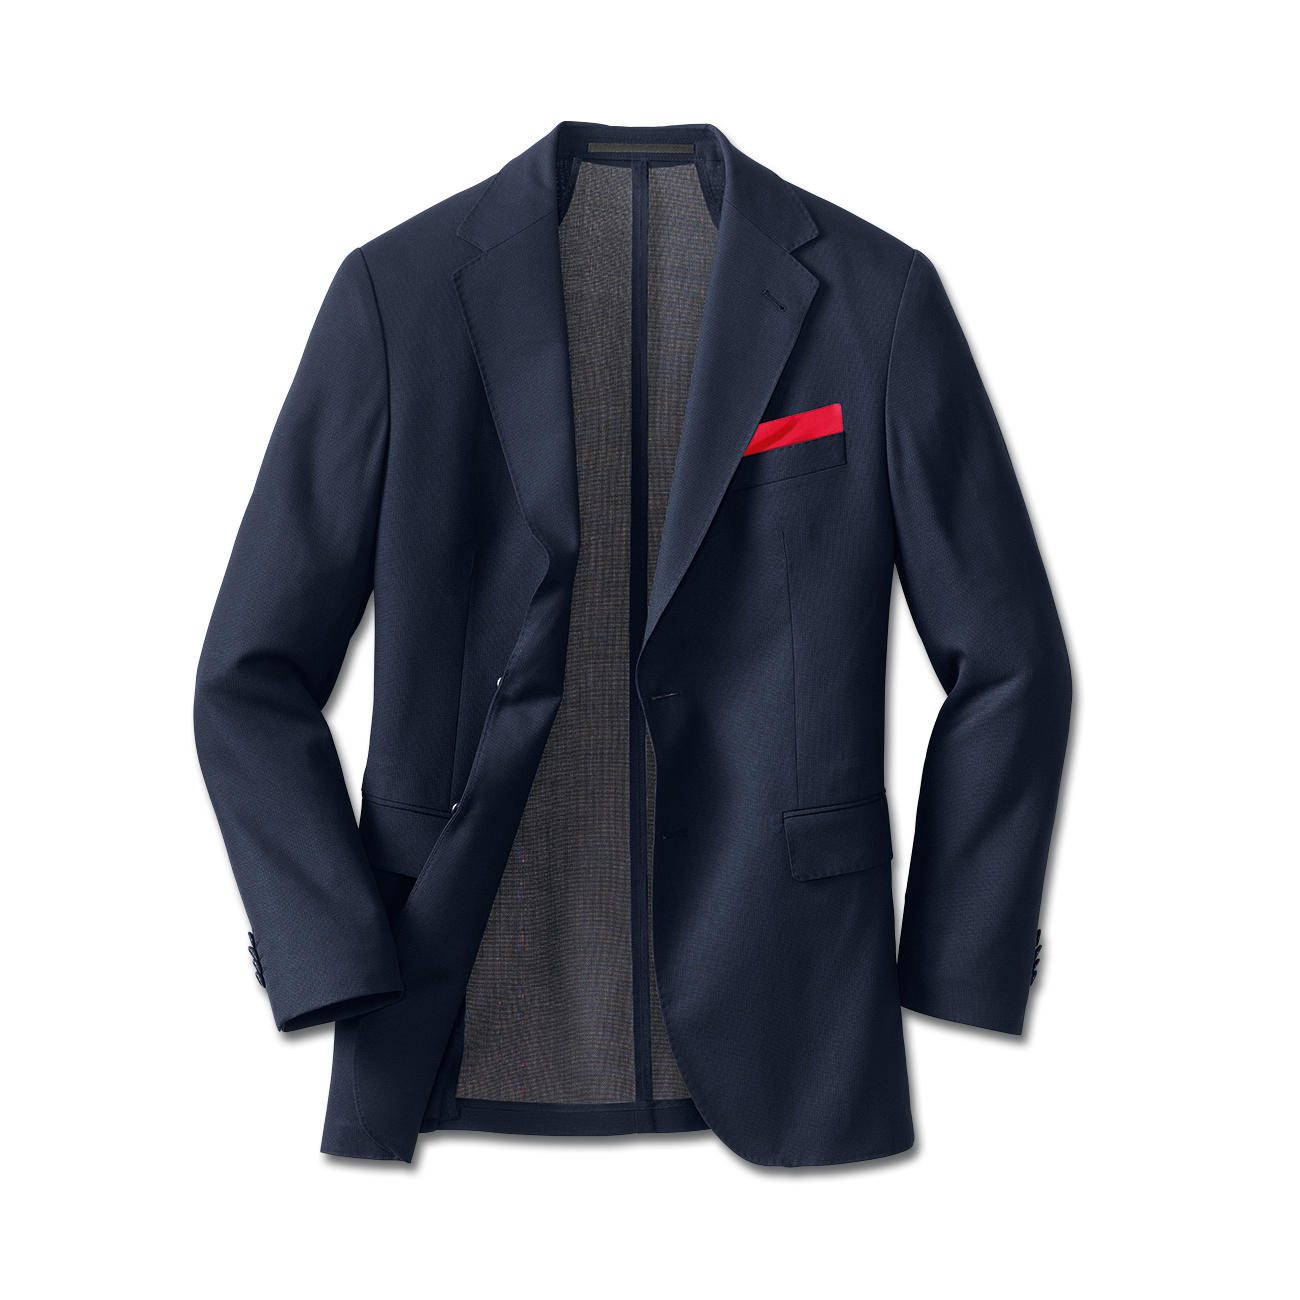 Sports Jacket With 1,300,000 woven pores, your respectable blue sports ...